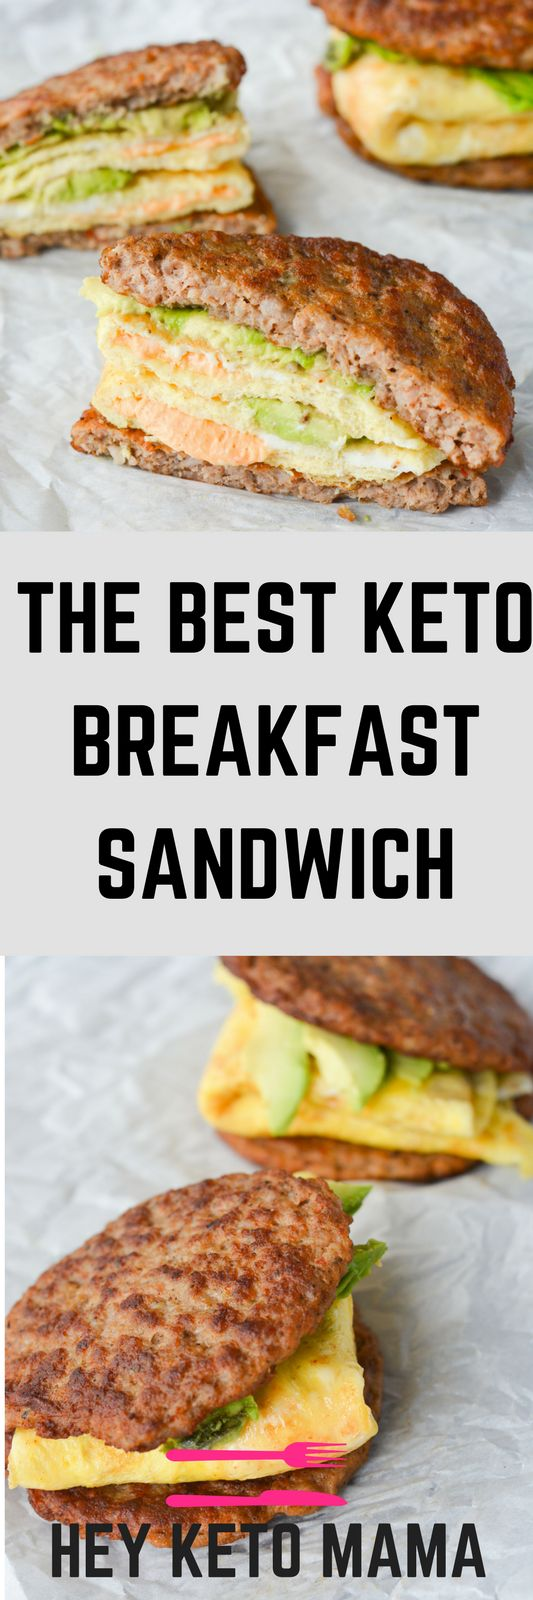 MY FAVORITE KETO BREAKFAST SANDWICH #KETO #BREAKFAST #SANDWICH   #DESSERTS #HEALTHYFOOD #EASY_RECIPES #DINNER #LAUCH #DELICIOUS #EASY #HOLIDAYS #RECIPE #SPECIAL_DIET #WORLD_CUISINE #CAKE #GRILL #APPETIZERS #HEALTHY_RECIPES #DRINKS #COOKING_METHOD #ITALIAN_RECIPES #MEAT #VEGAN_RECIPES #COOKIES #PASTA #FRUIT #SALAD #SOUP_APPETIZERS #NON_ALCOHOLIC_DRINKS #MEAL_PLANNING #VEGETABLES #SOUP #PASTRY #CHOCOLATE #DAIRY #ALCOHOLIC_DRINKS #BULGUR_SALAD #BAKING #SNACKS #BEEF_RECIPES #MEAT_APPETIZERS #MEXICAN_RECIPES #BREAD #ASIAN_RECIPES #SEAFOOD_APPETIZERS #MUFFINS #BREAKFAST_AND_BRUNCH #CONDIMENTS #CUPCAKES #CHEESE #CHICKEN_RECIPES #PIE #COFFEE #NO_BAKE_DESSERTS #HEALTHY_SNACKS #SEAFOOD #GRAIN #LUNCHES_DINNERS #MEXICAN #QUICK_BREAD #LIQUOR